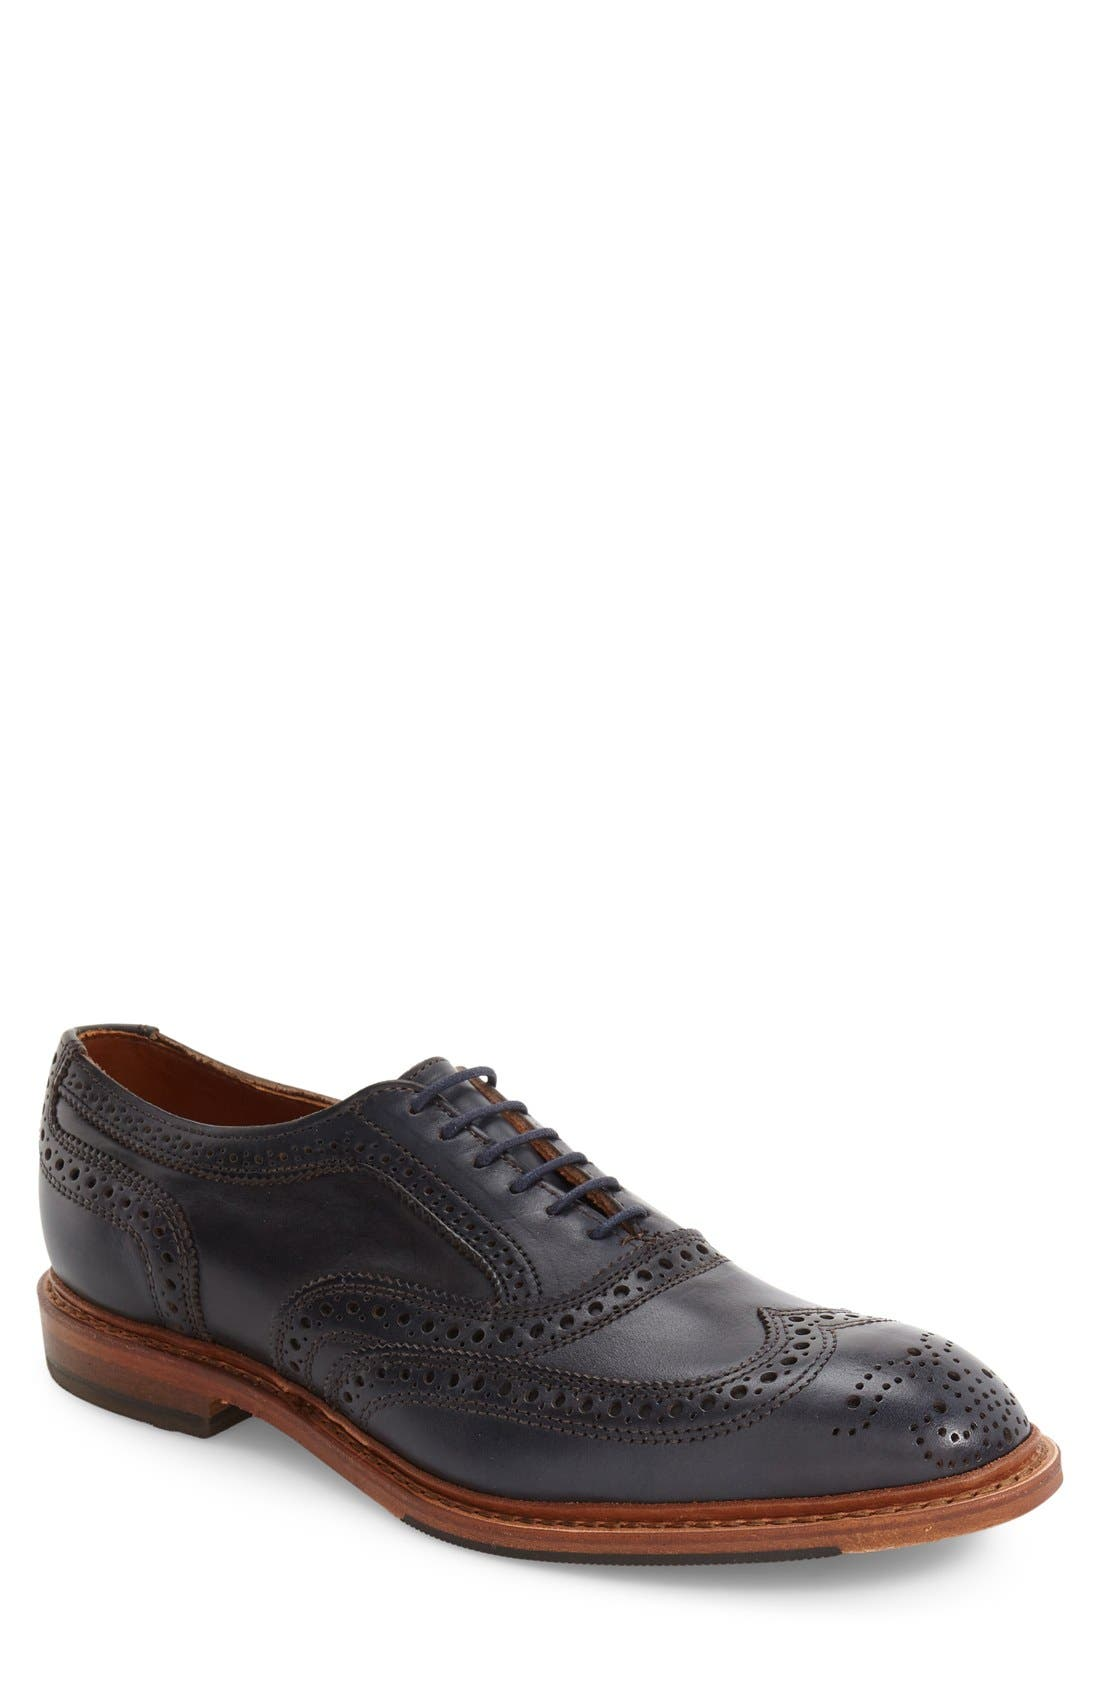 ALLEN EDMONDS Neumok 2.0 Wingtip